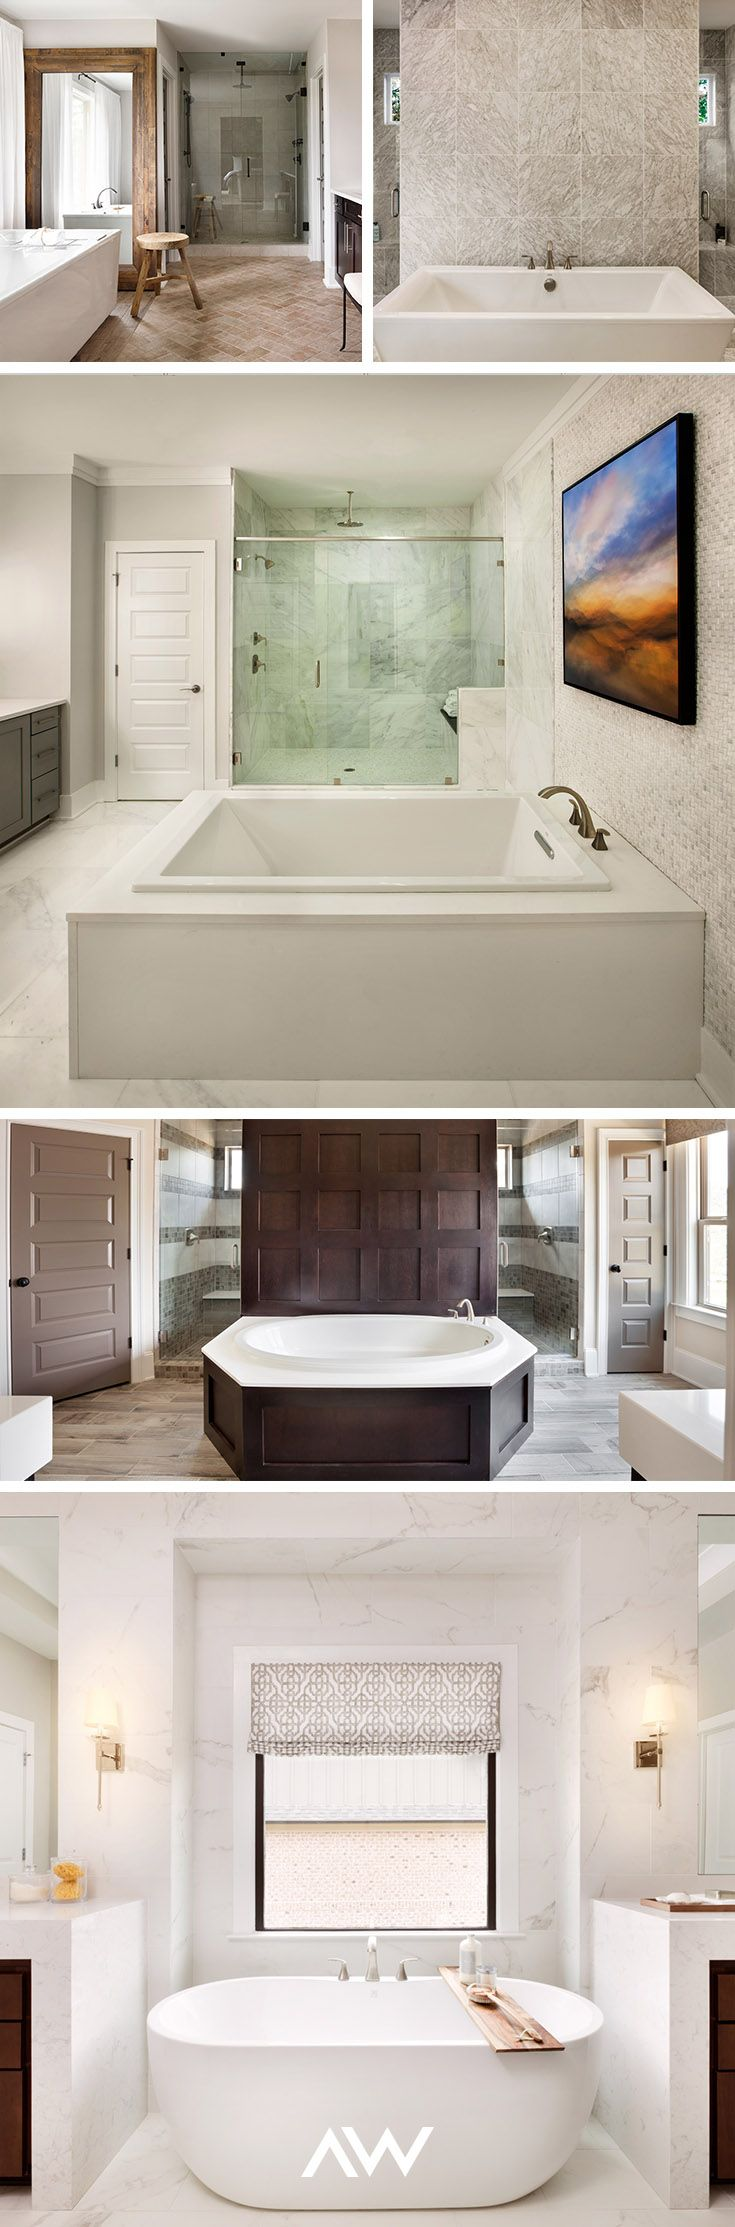 Beautiful Bathtubs 114 best bathtubs | ashton woods images on pinterest | bathroom